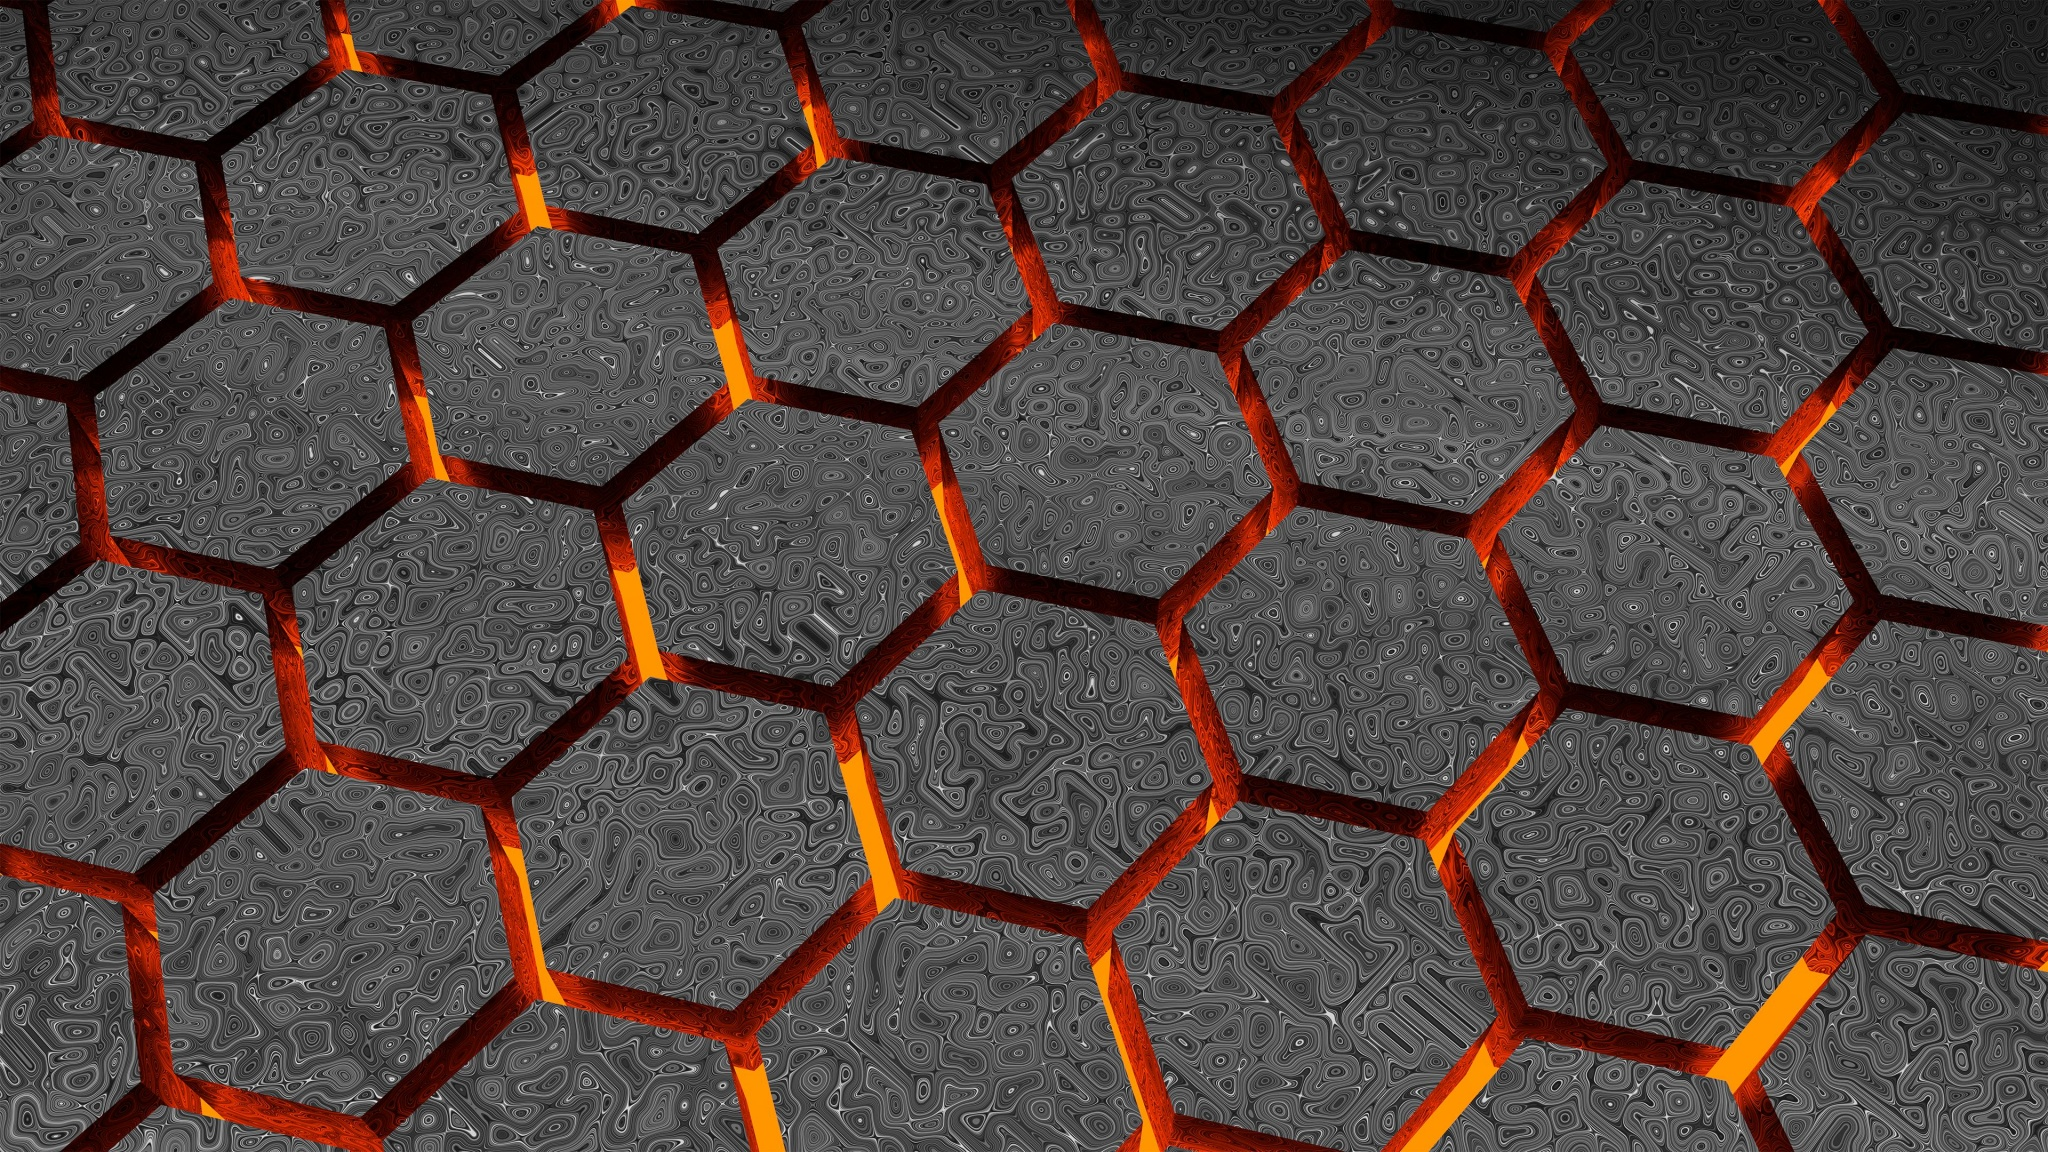 Hexagon Pattern Texture Wallpapers 2048x1152 1433640